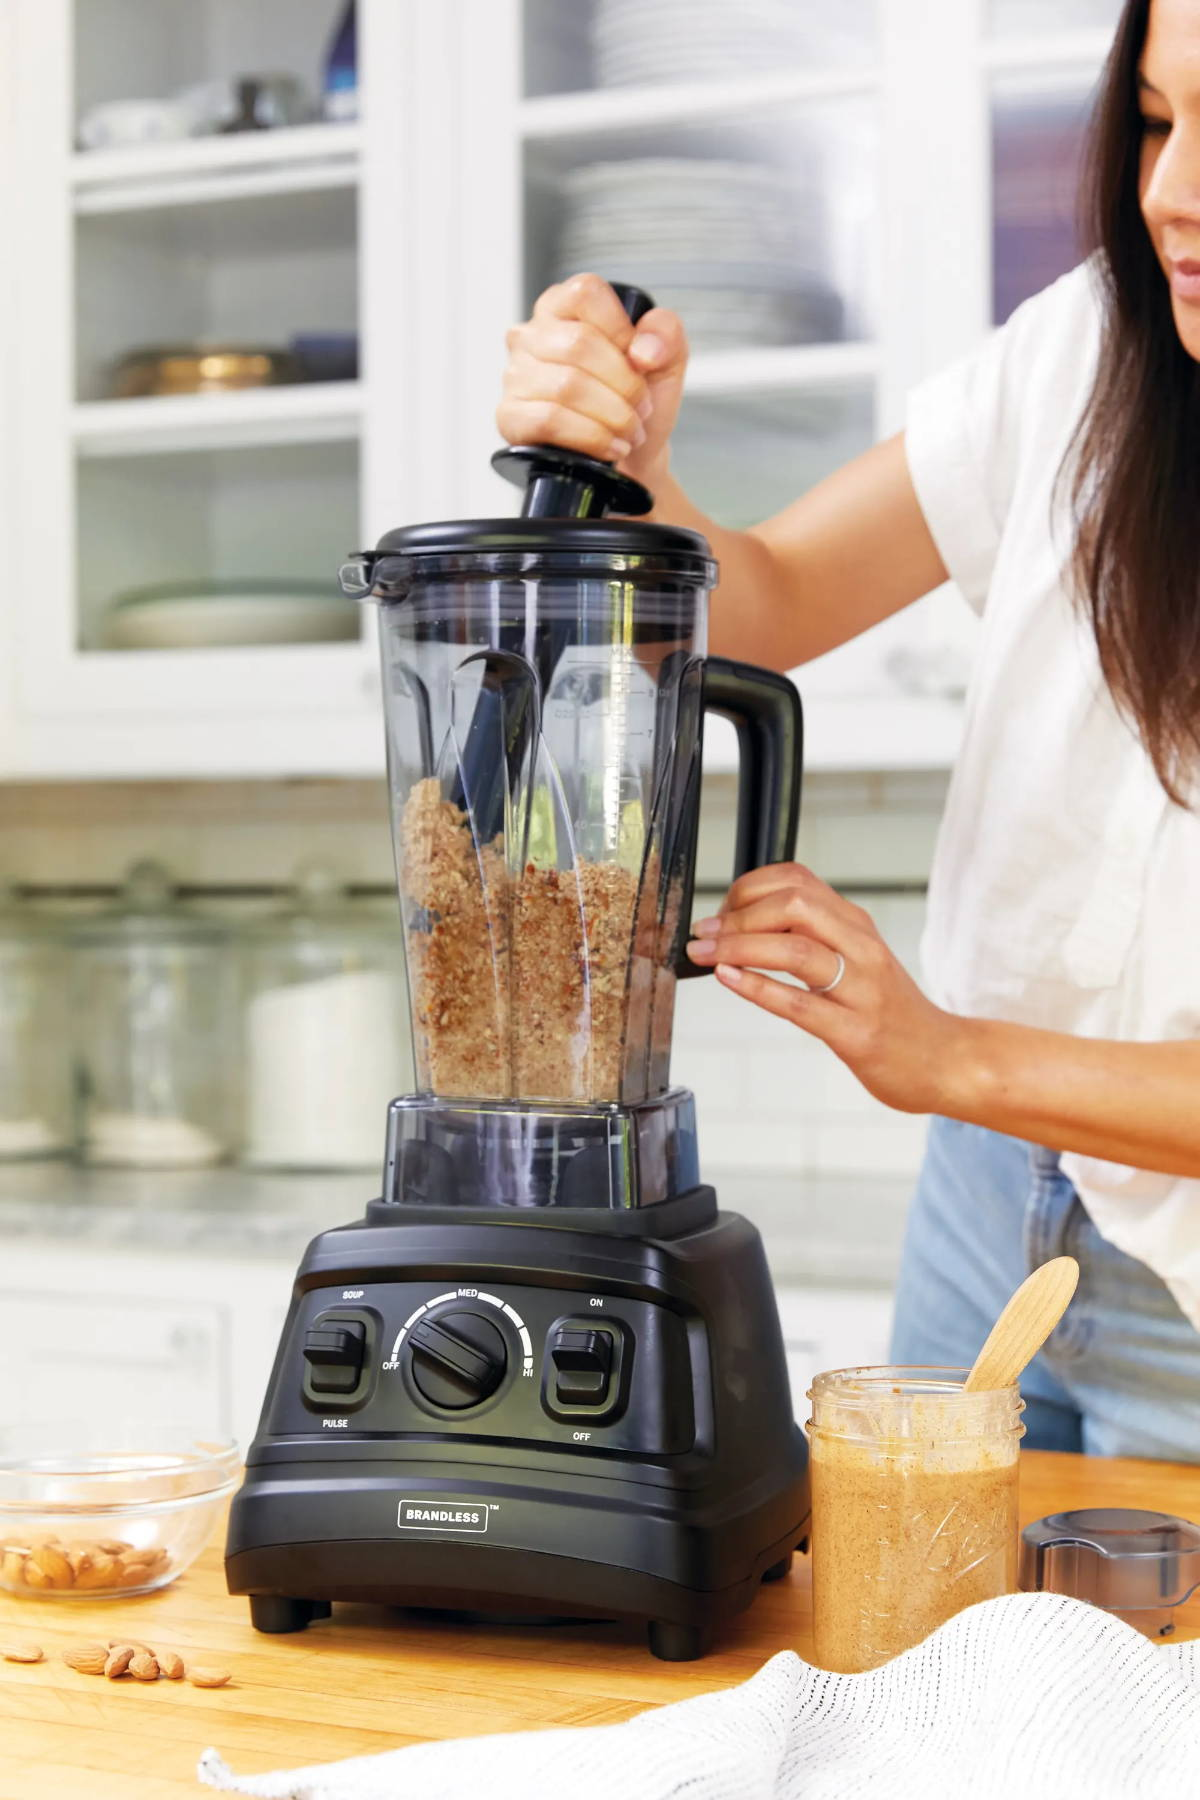 Molting Snack Recipes- Smoothie